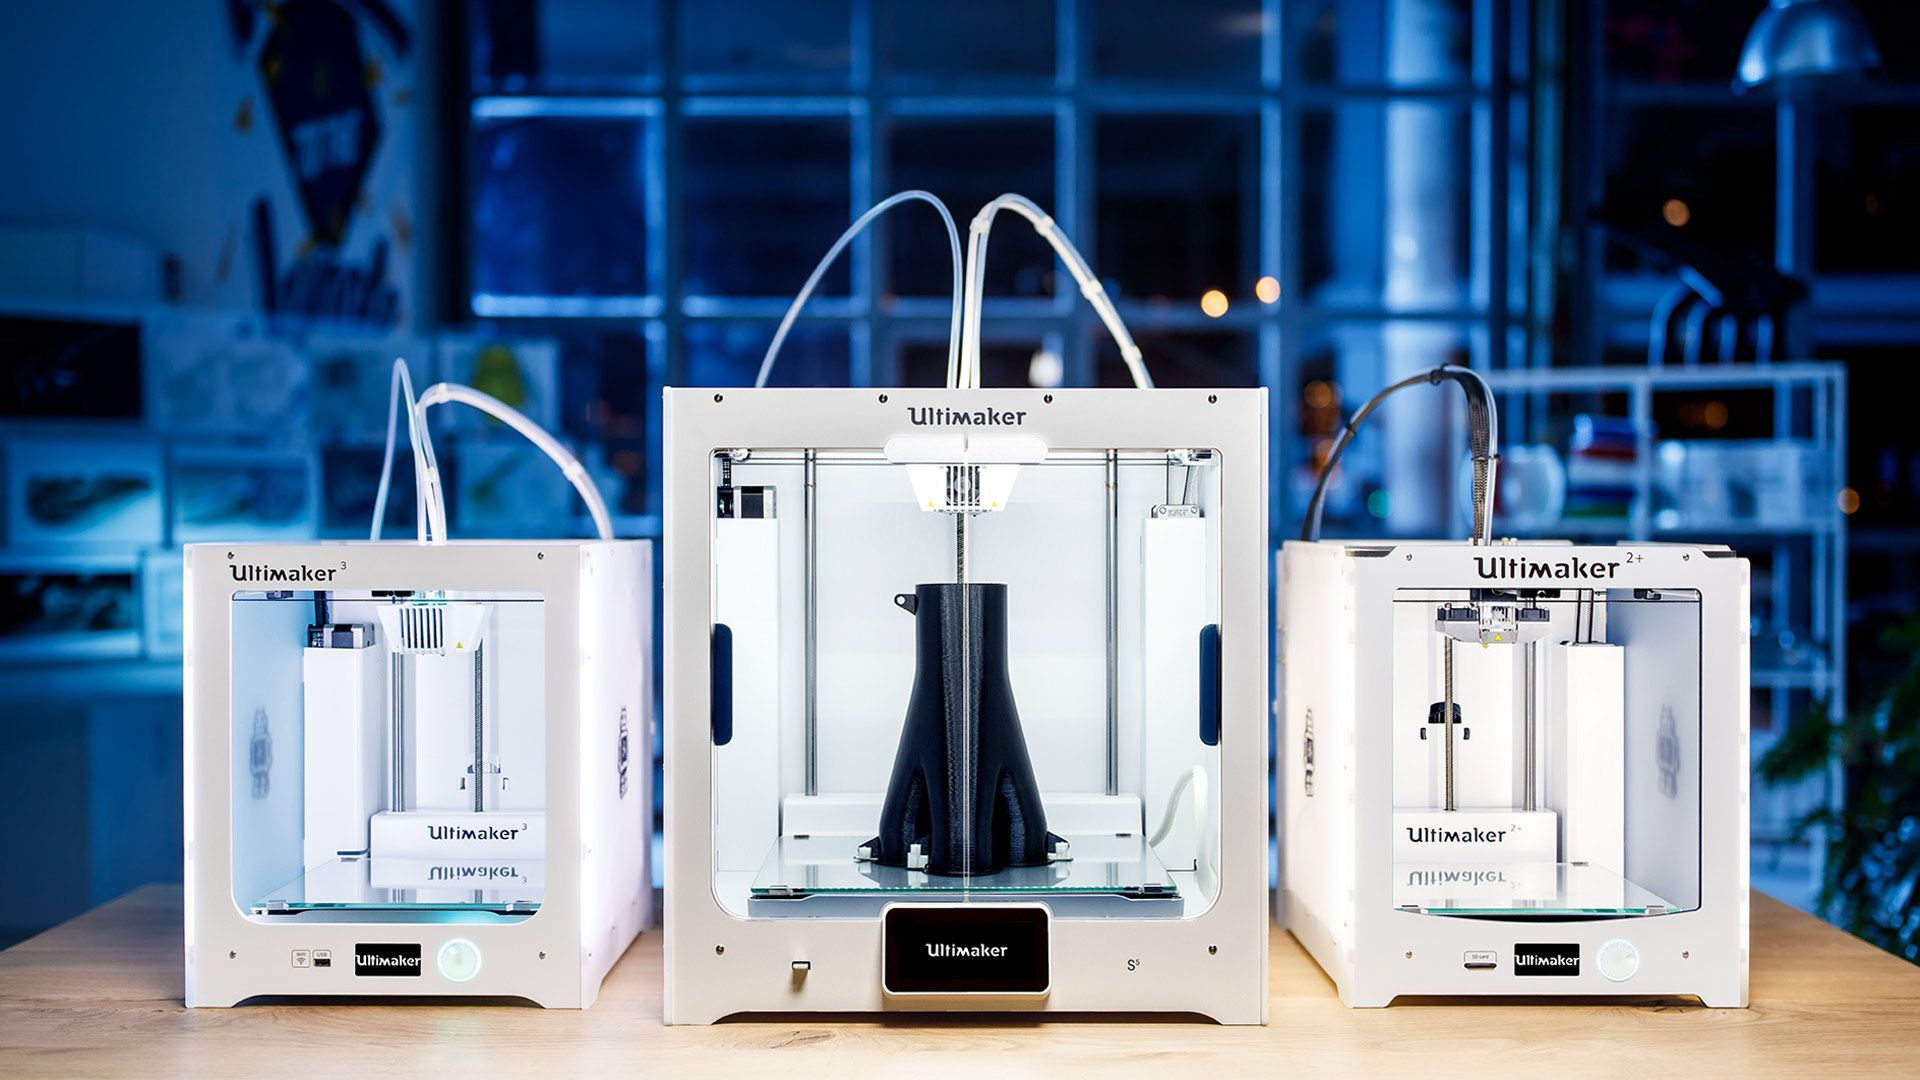 Distribuidor oficial de Ultimaker